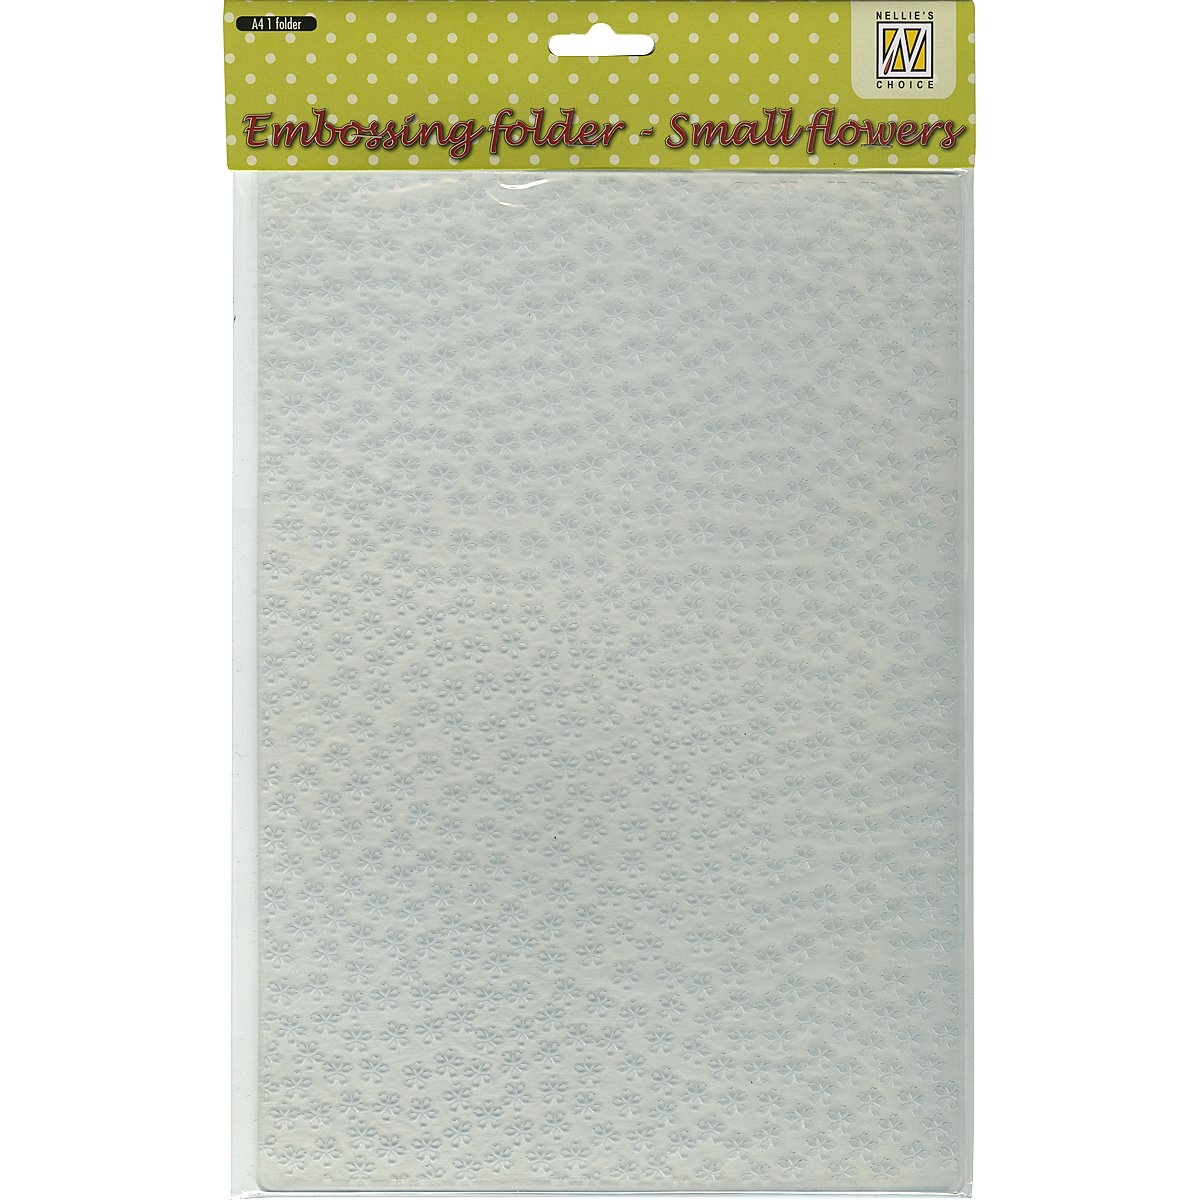 Ecstasy Crafts Nellie's Choice A4 Embossing Folder, Small Flowers EEBA406